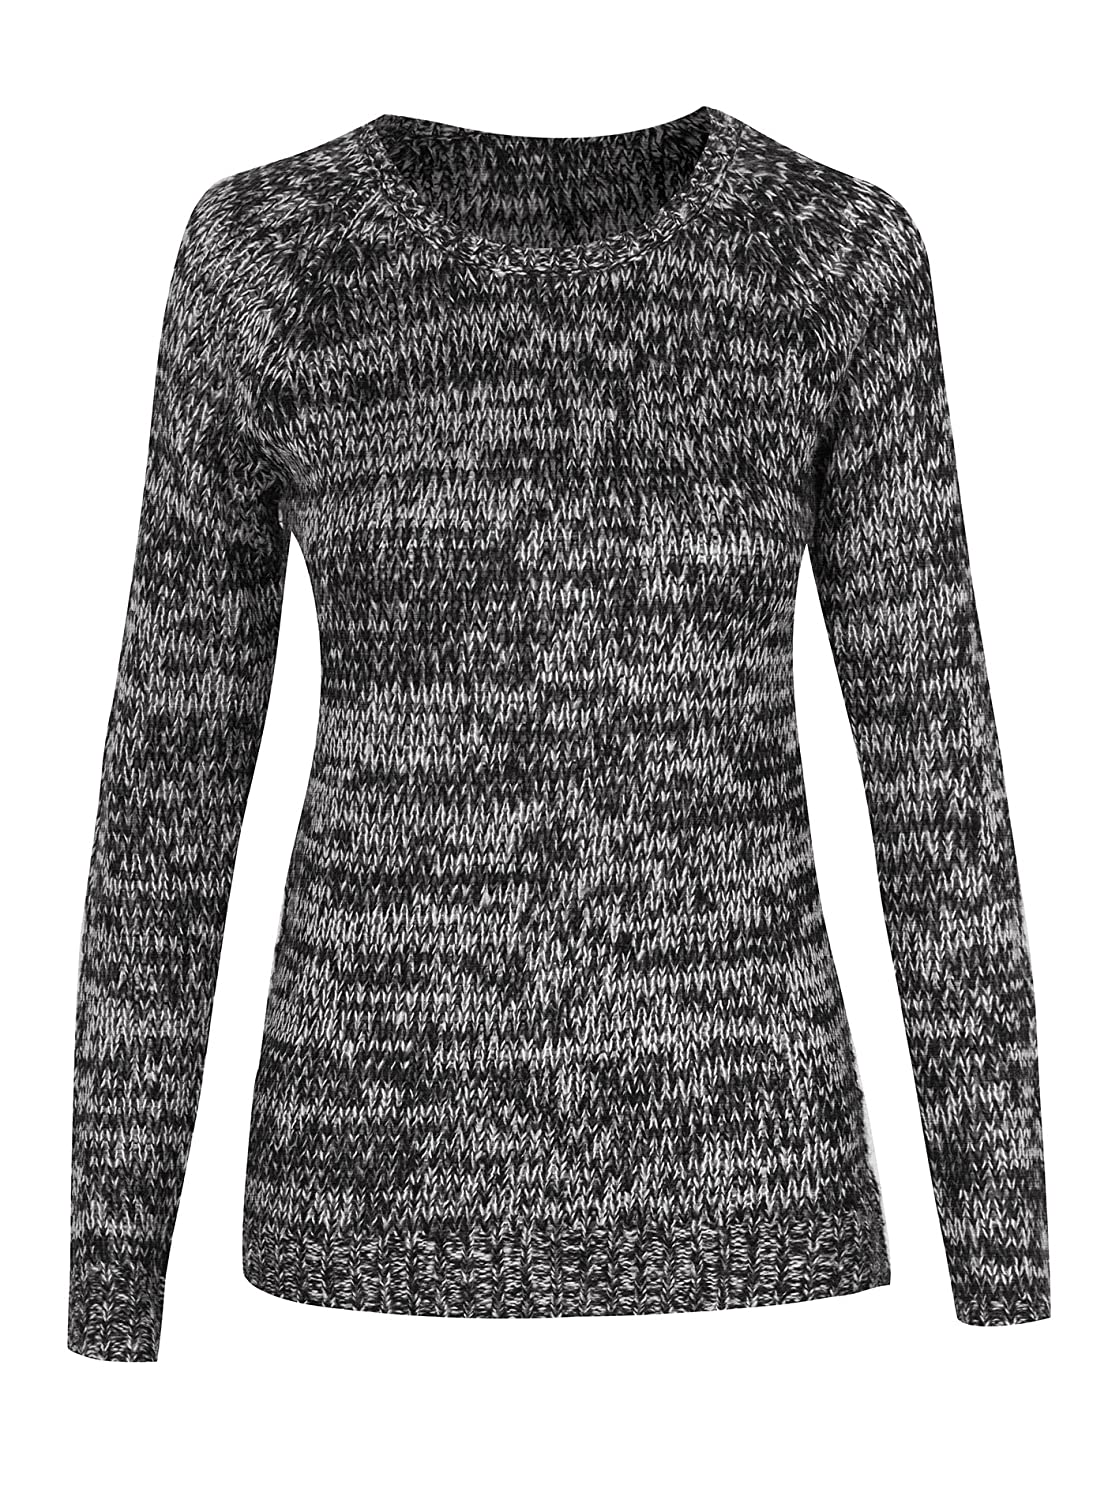 Women's Crewneck Long Sleeve Solid Knit Pullover Sweater Top